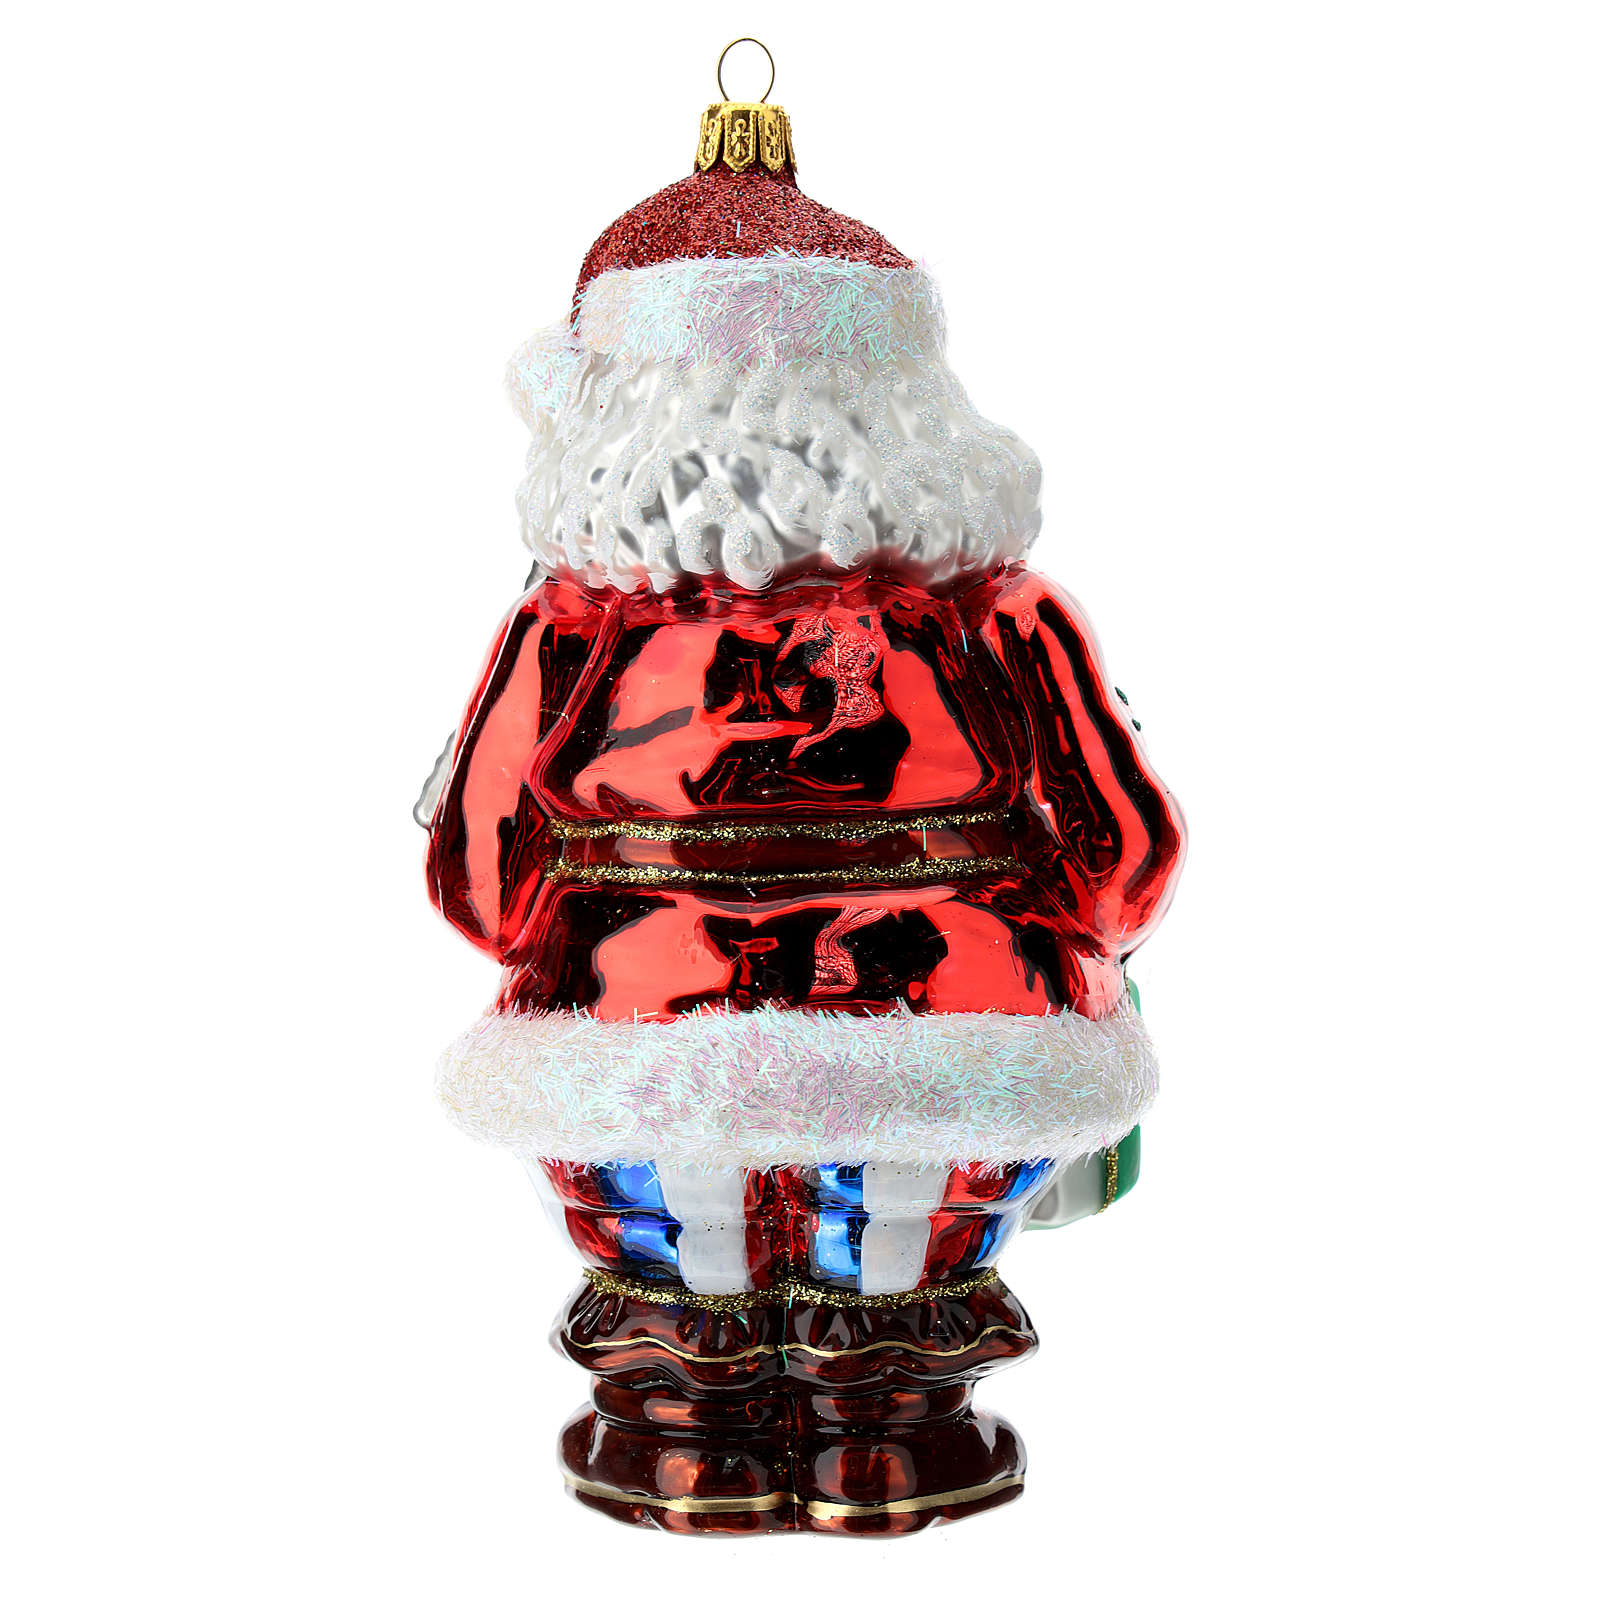 Blown glass Christmas ornament, Santa Claus in France 4